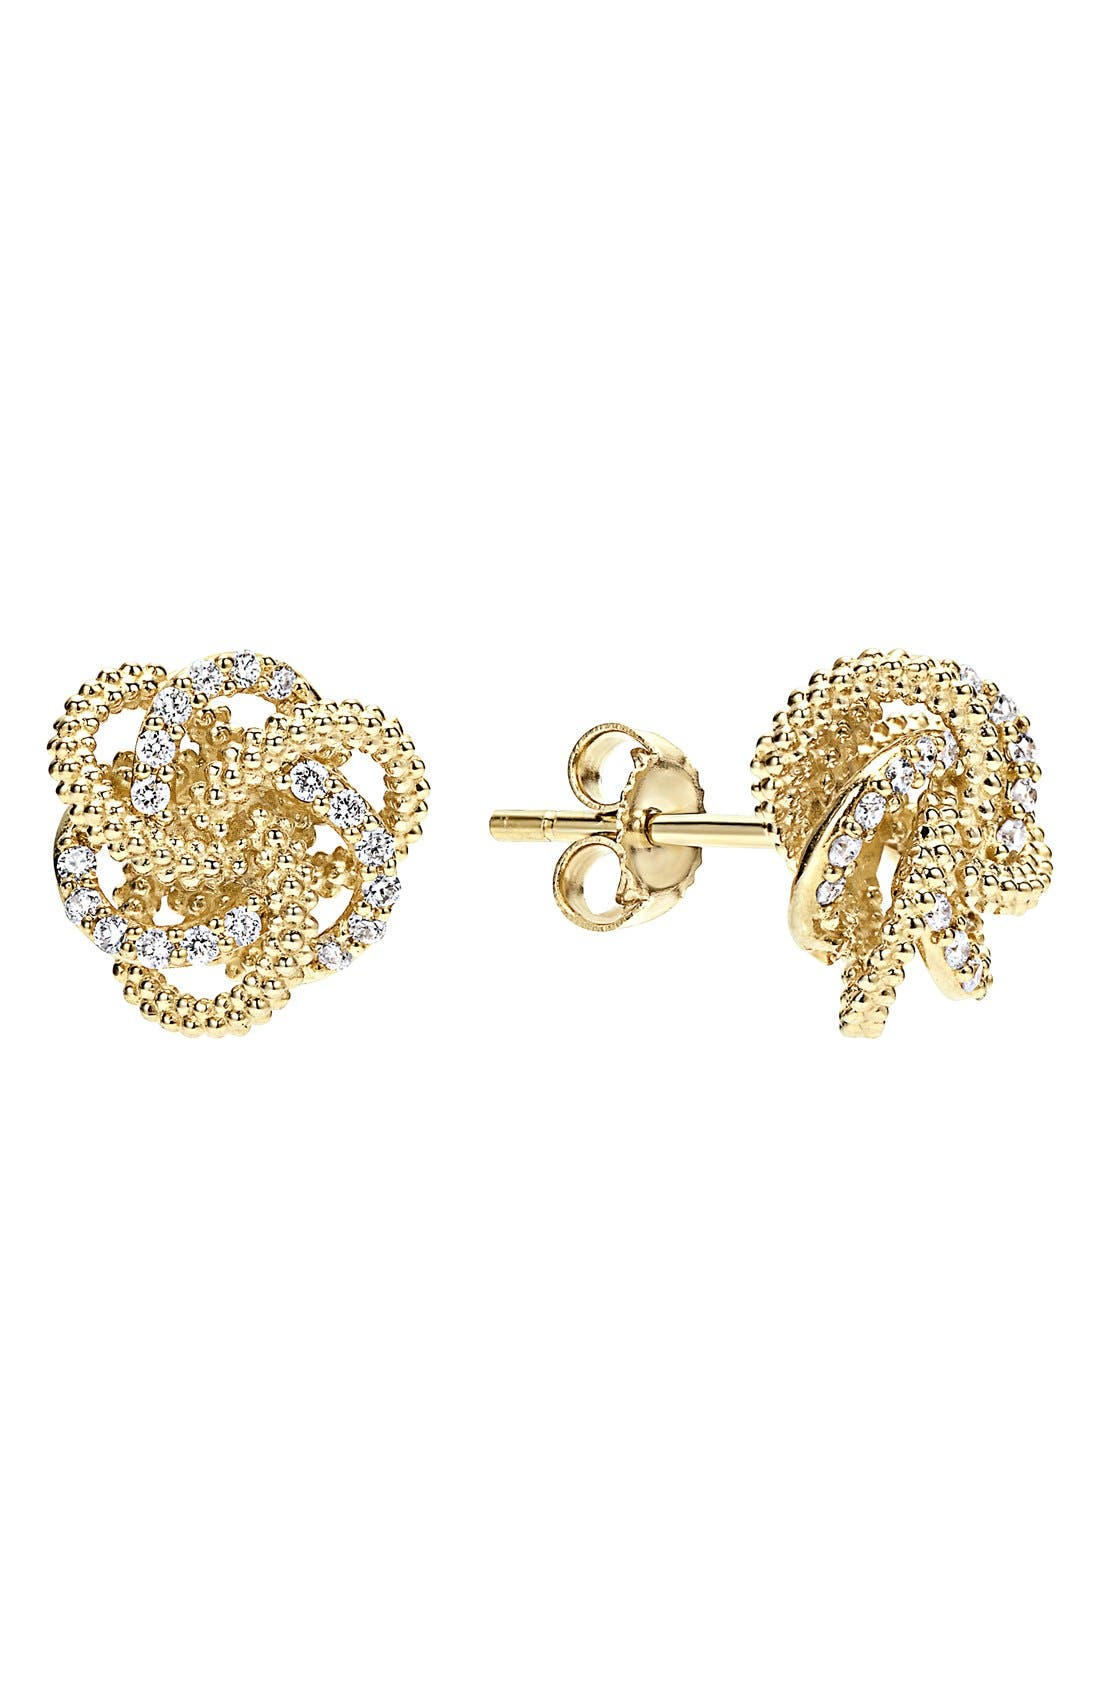 LAGOS Love Knot Diamond Stud Earrings